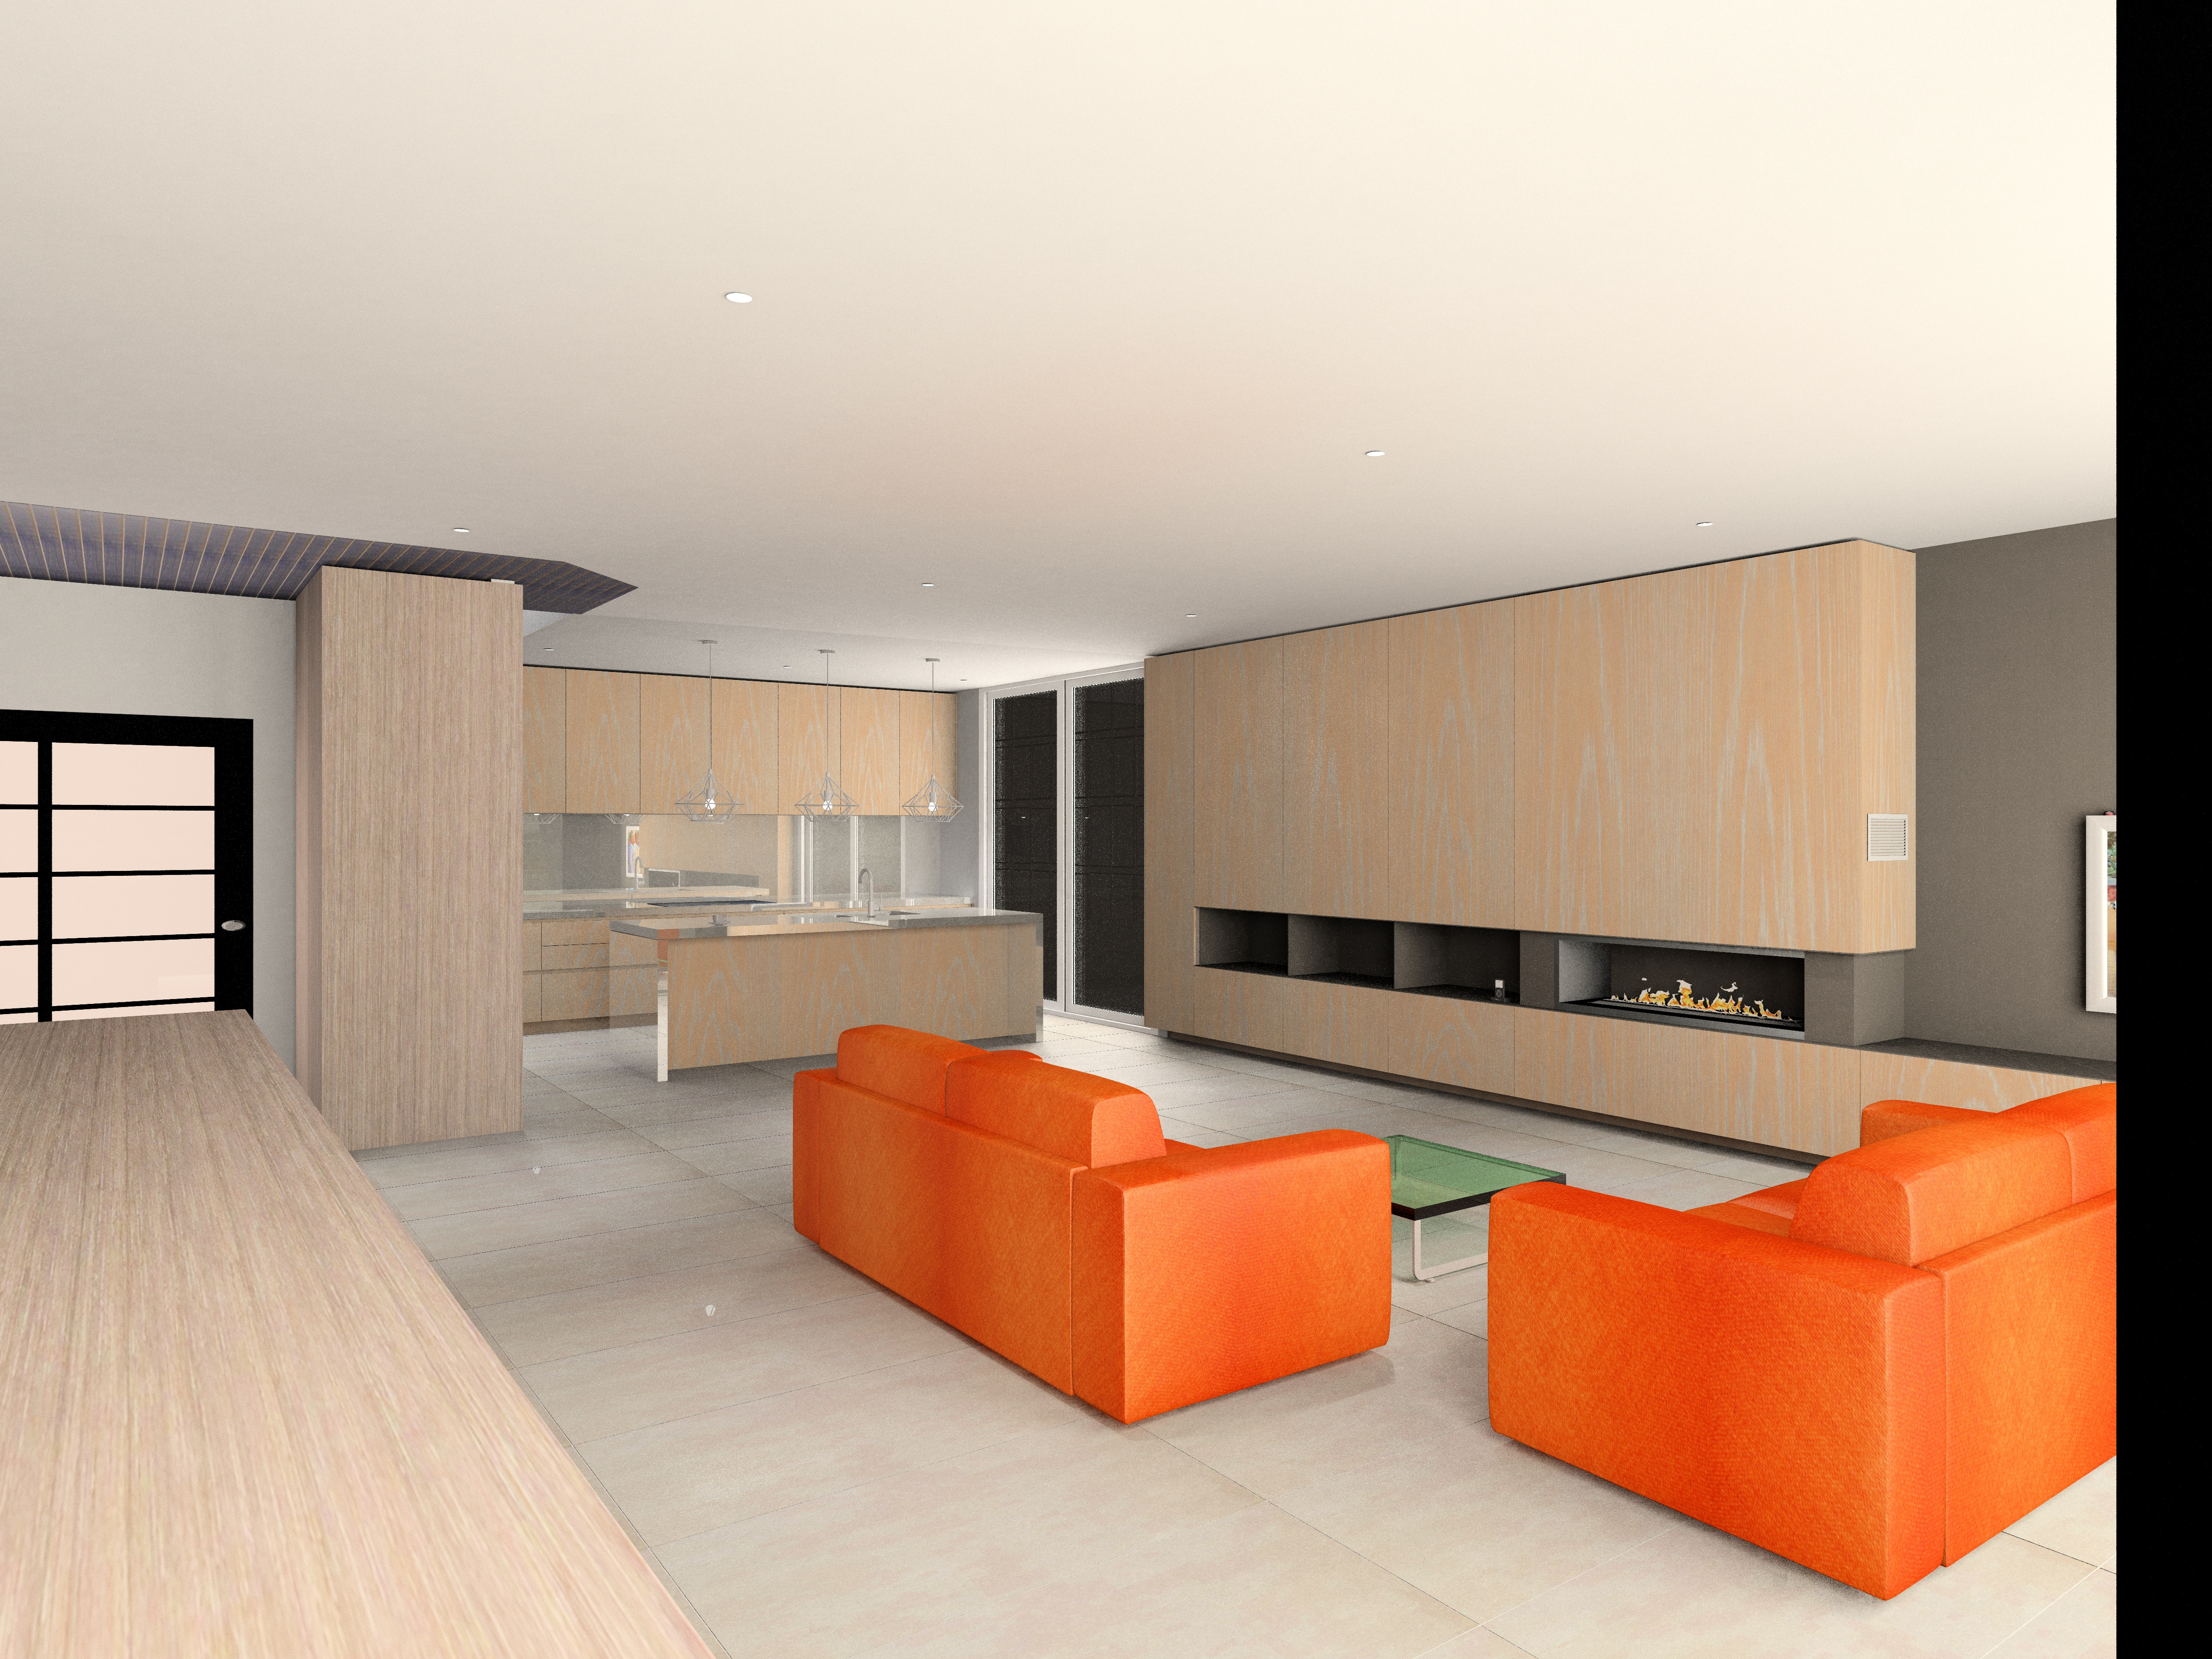 KD Max living and kitchen render